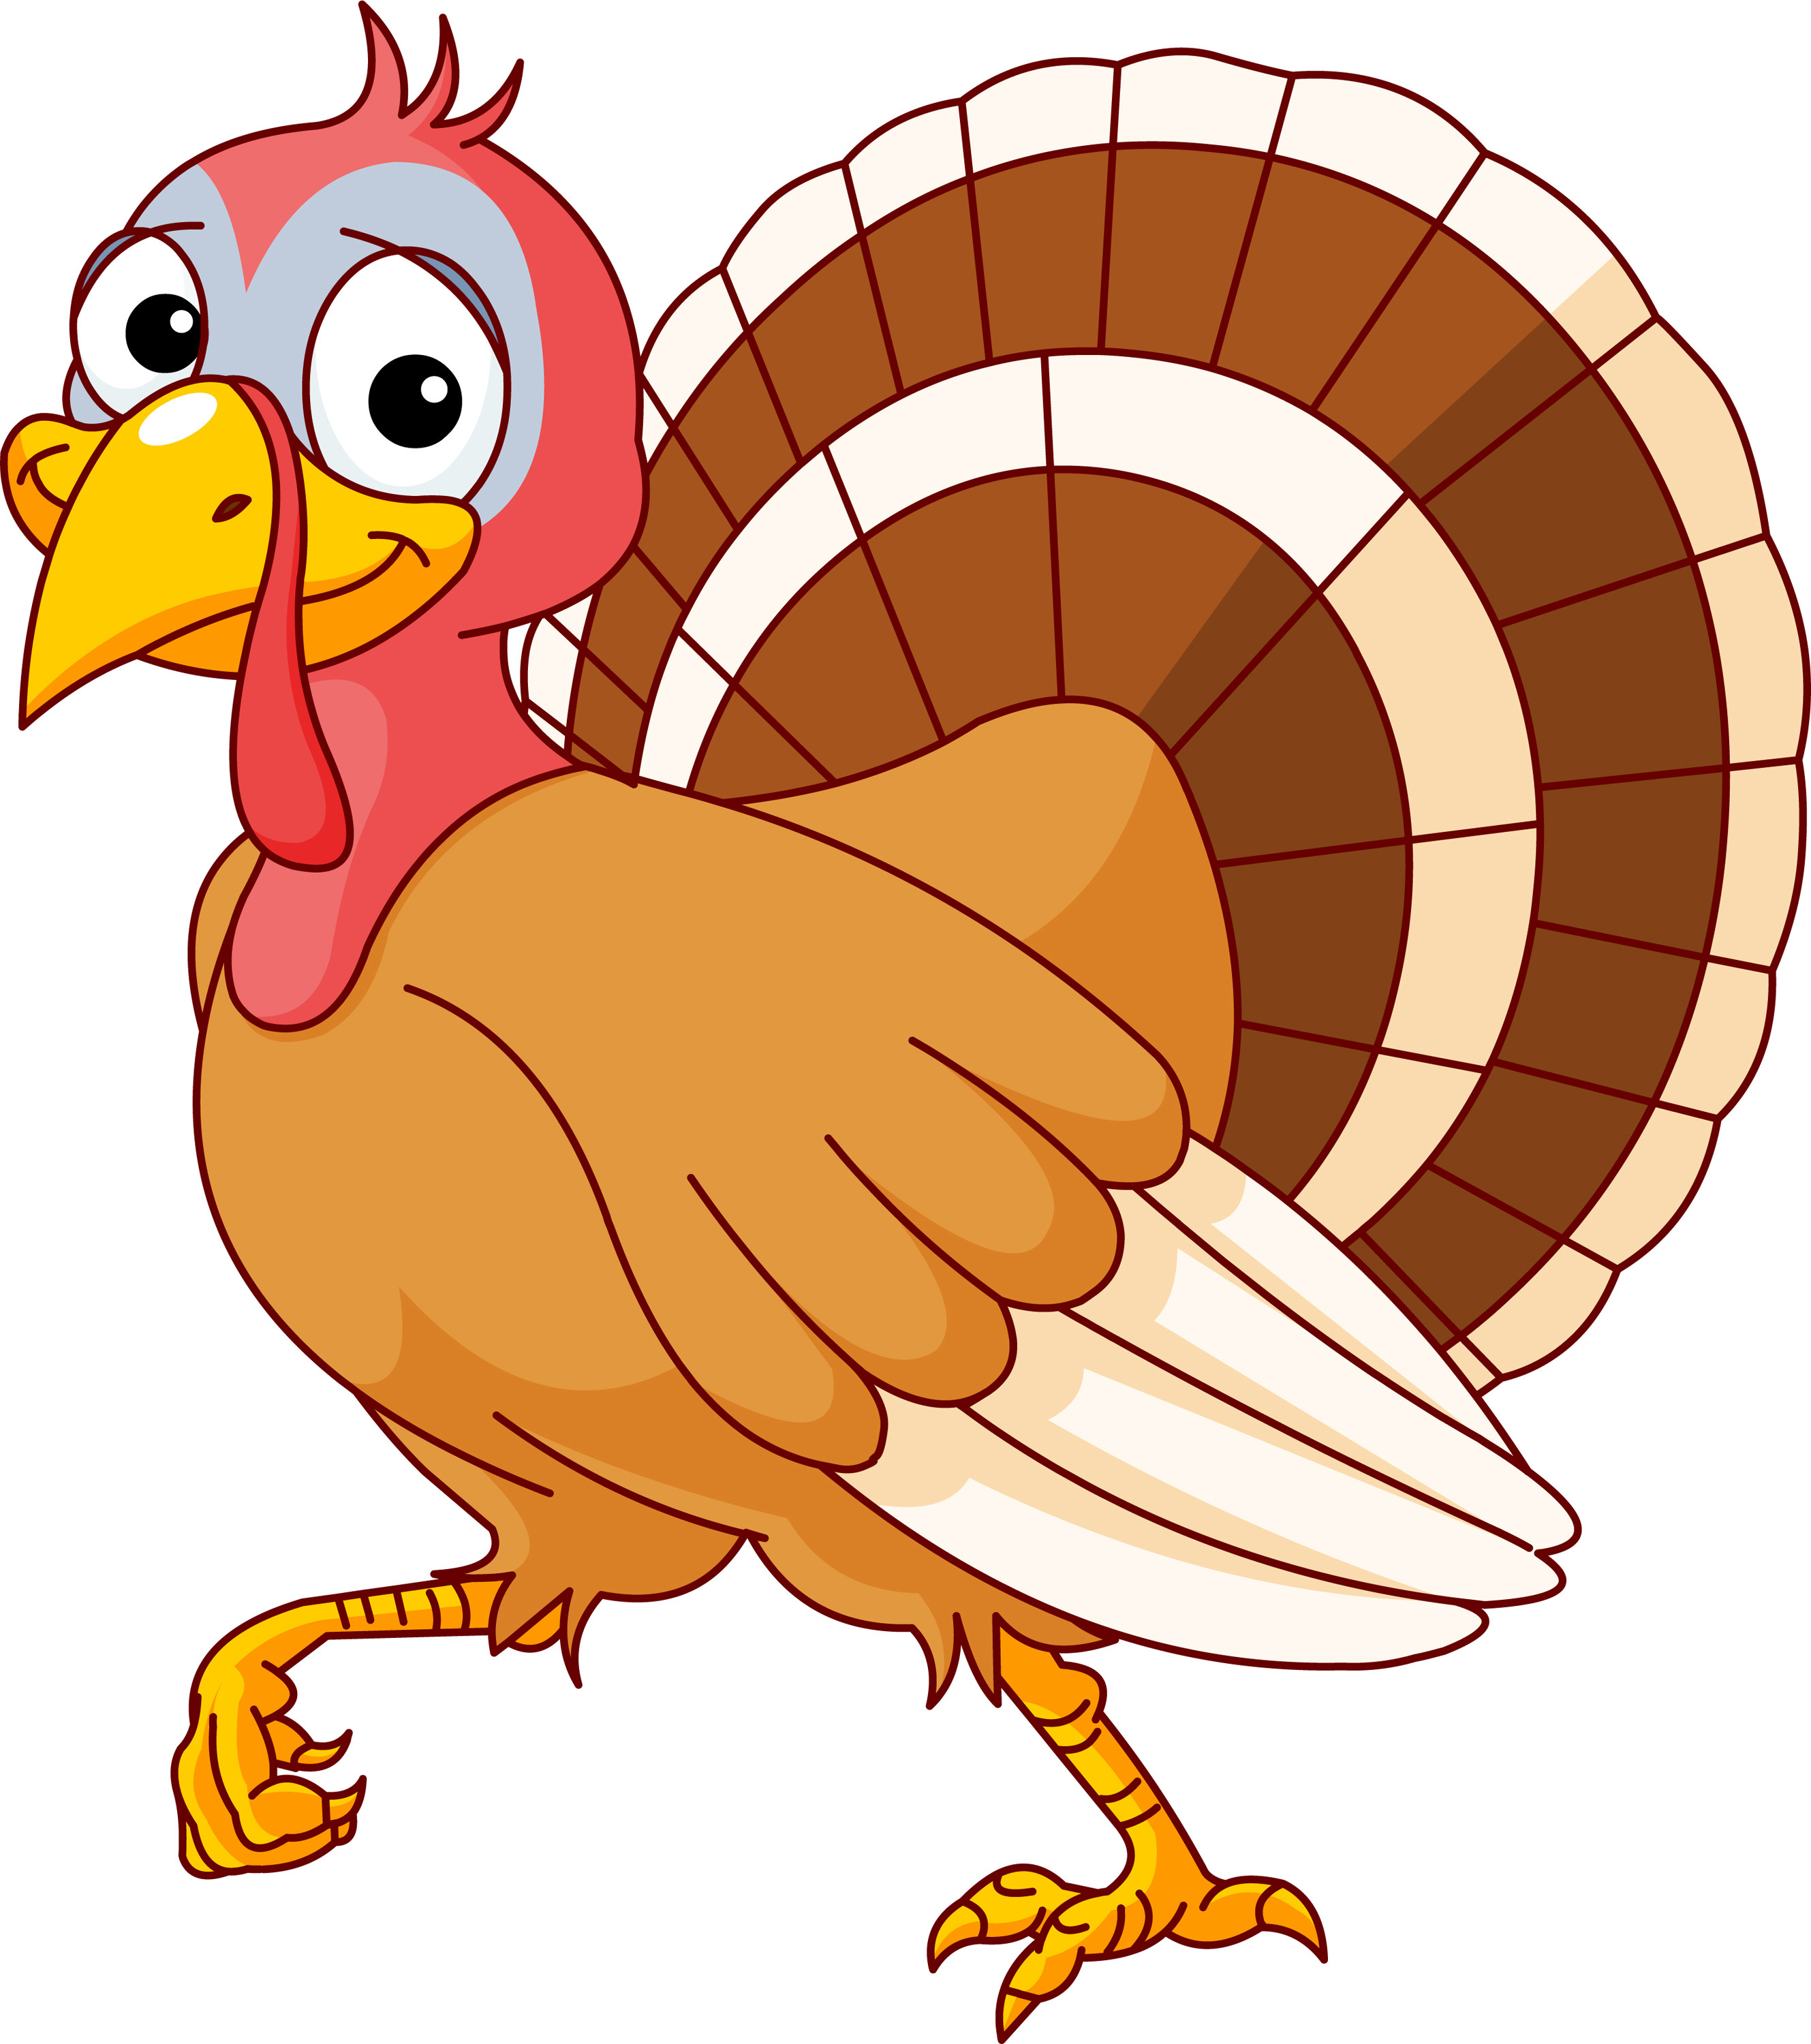 Thanksgiving Turkey Image  Day 6 Write a letter as a turkey convincing people to